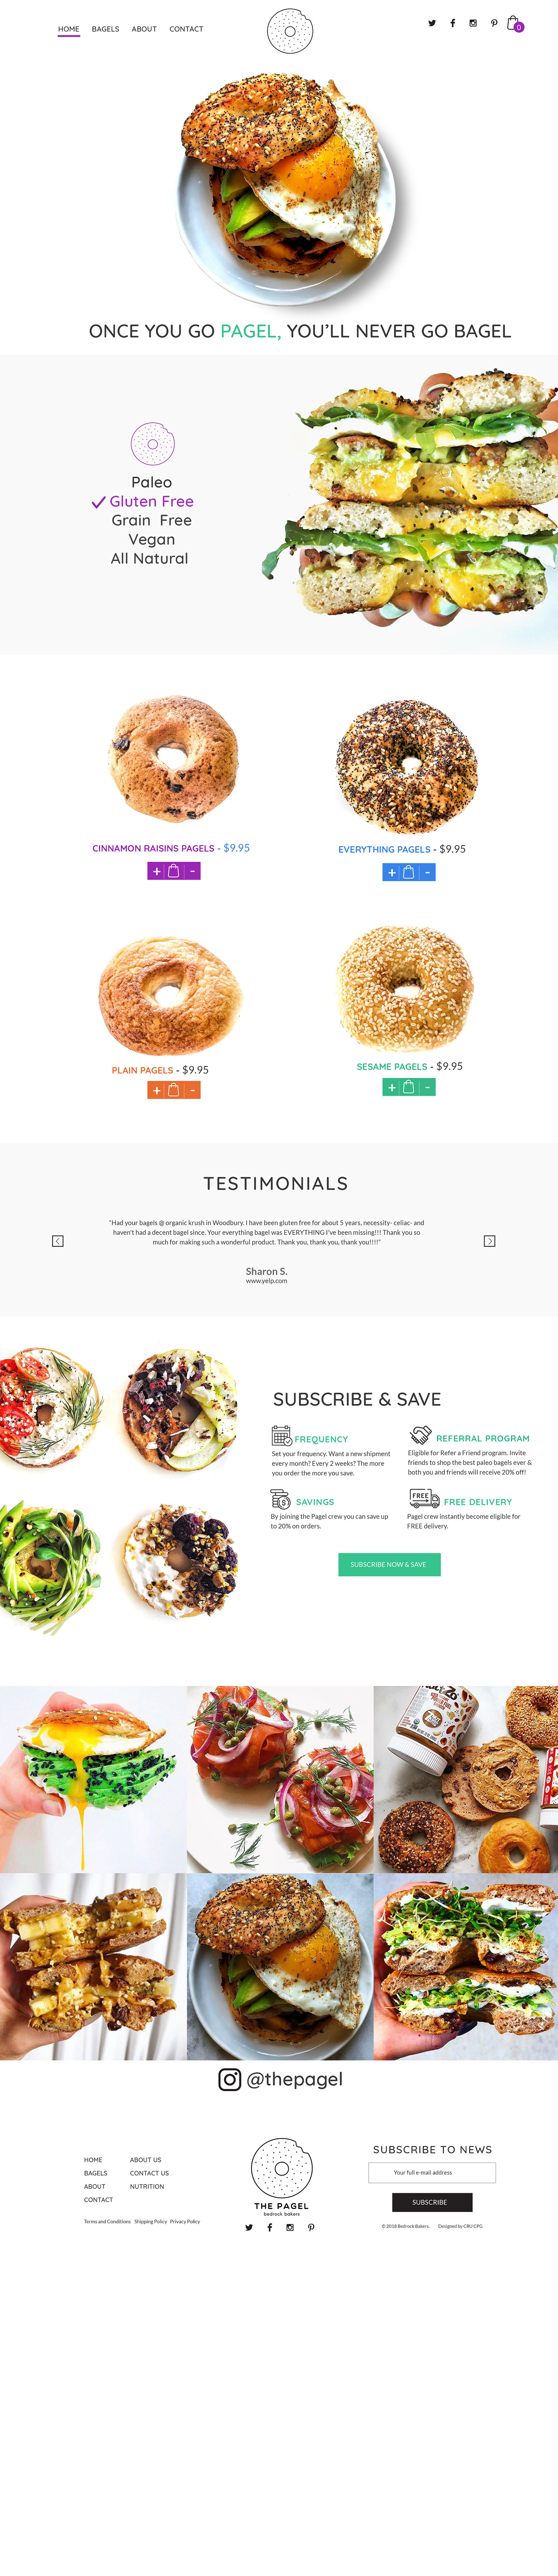 Pagel_homepage3